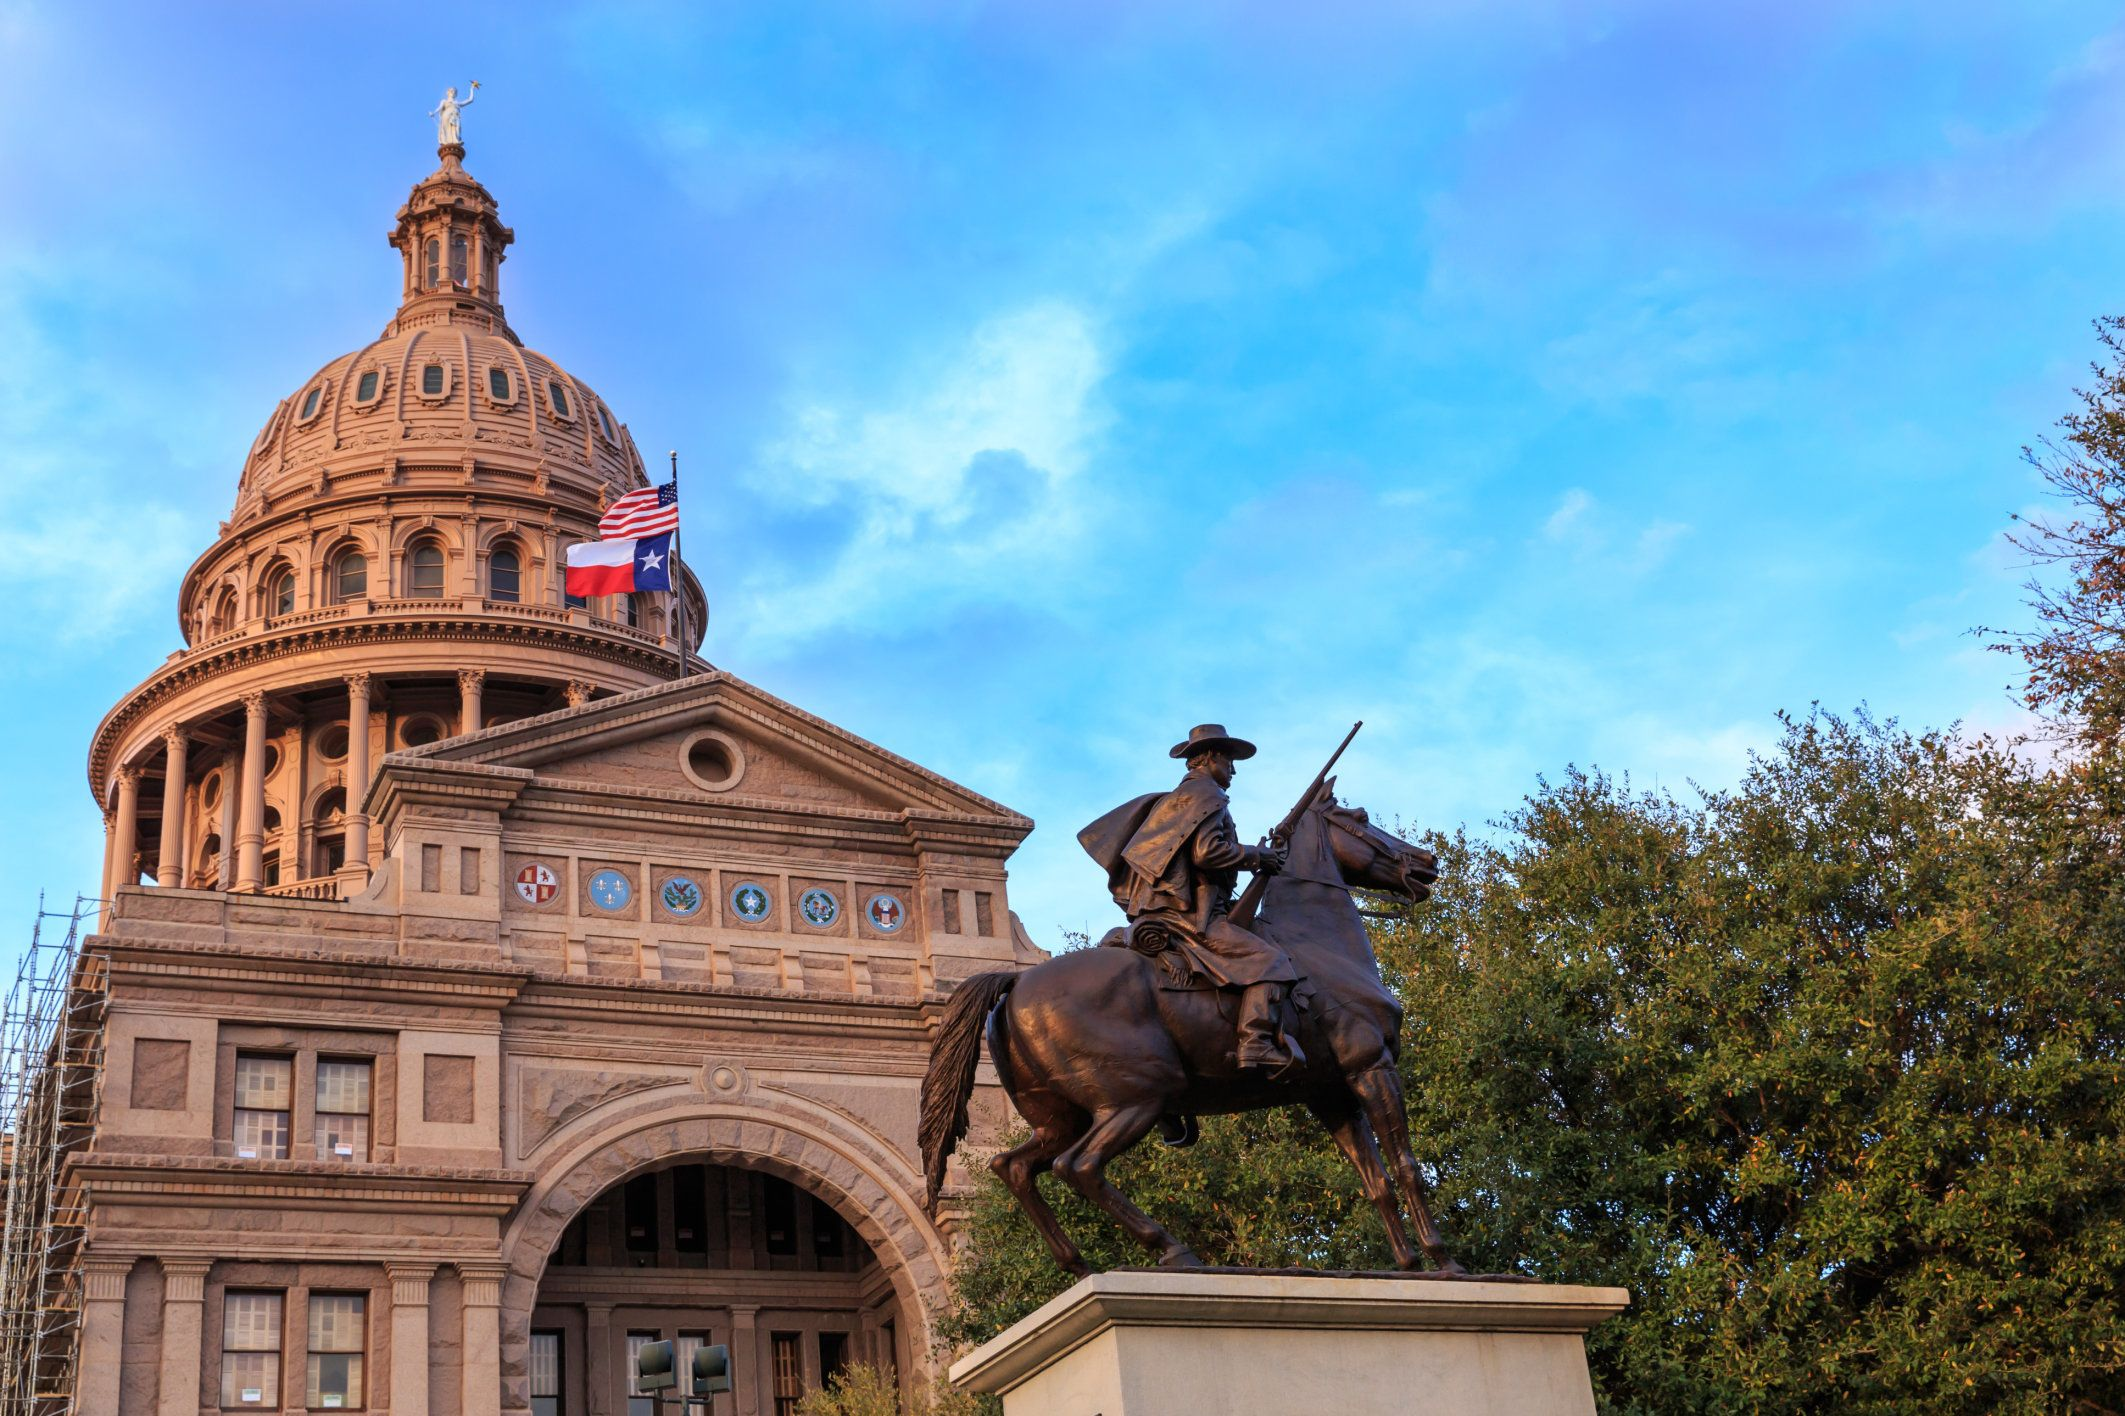 The Texas Ranger statue in front of the Texas Capital building in Austin, TX